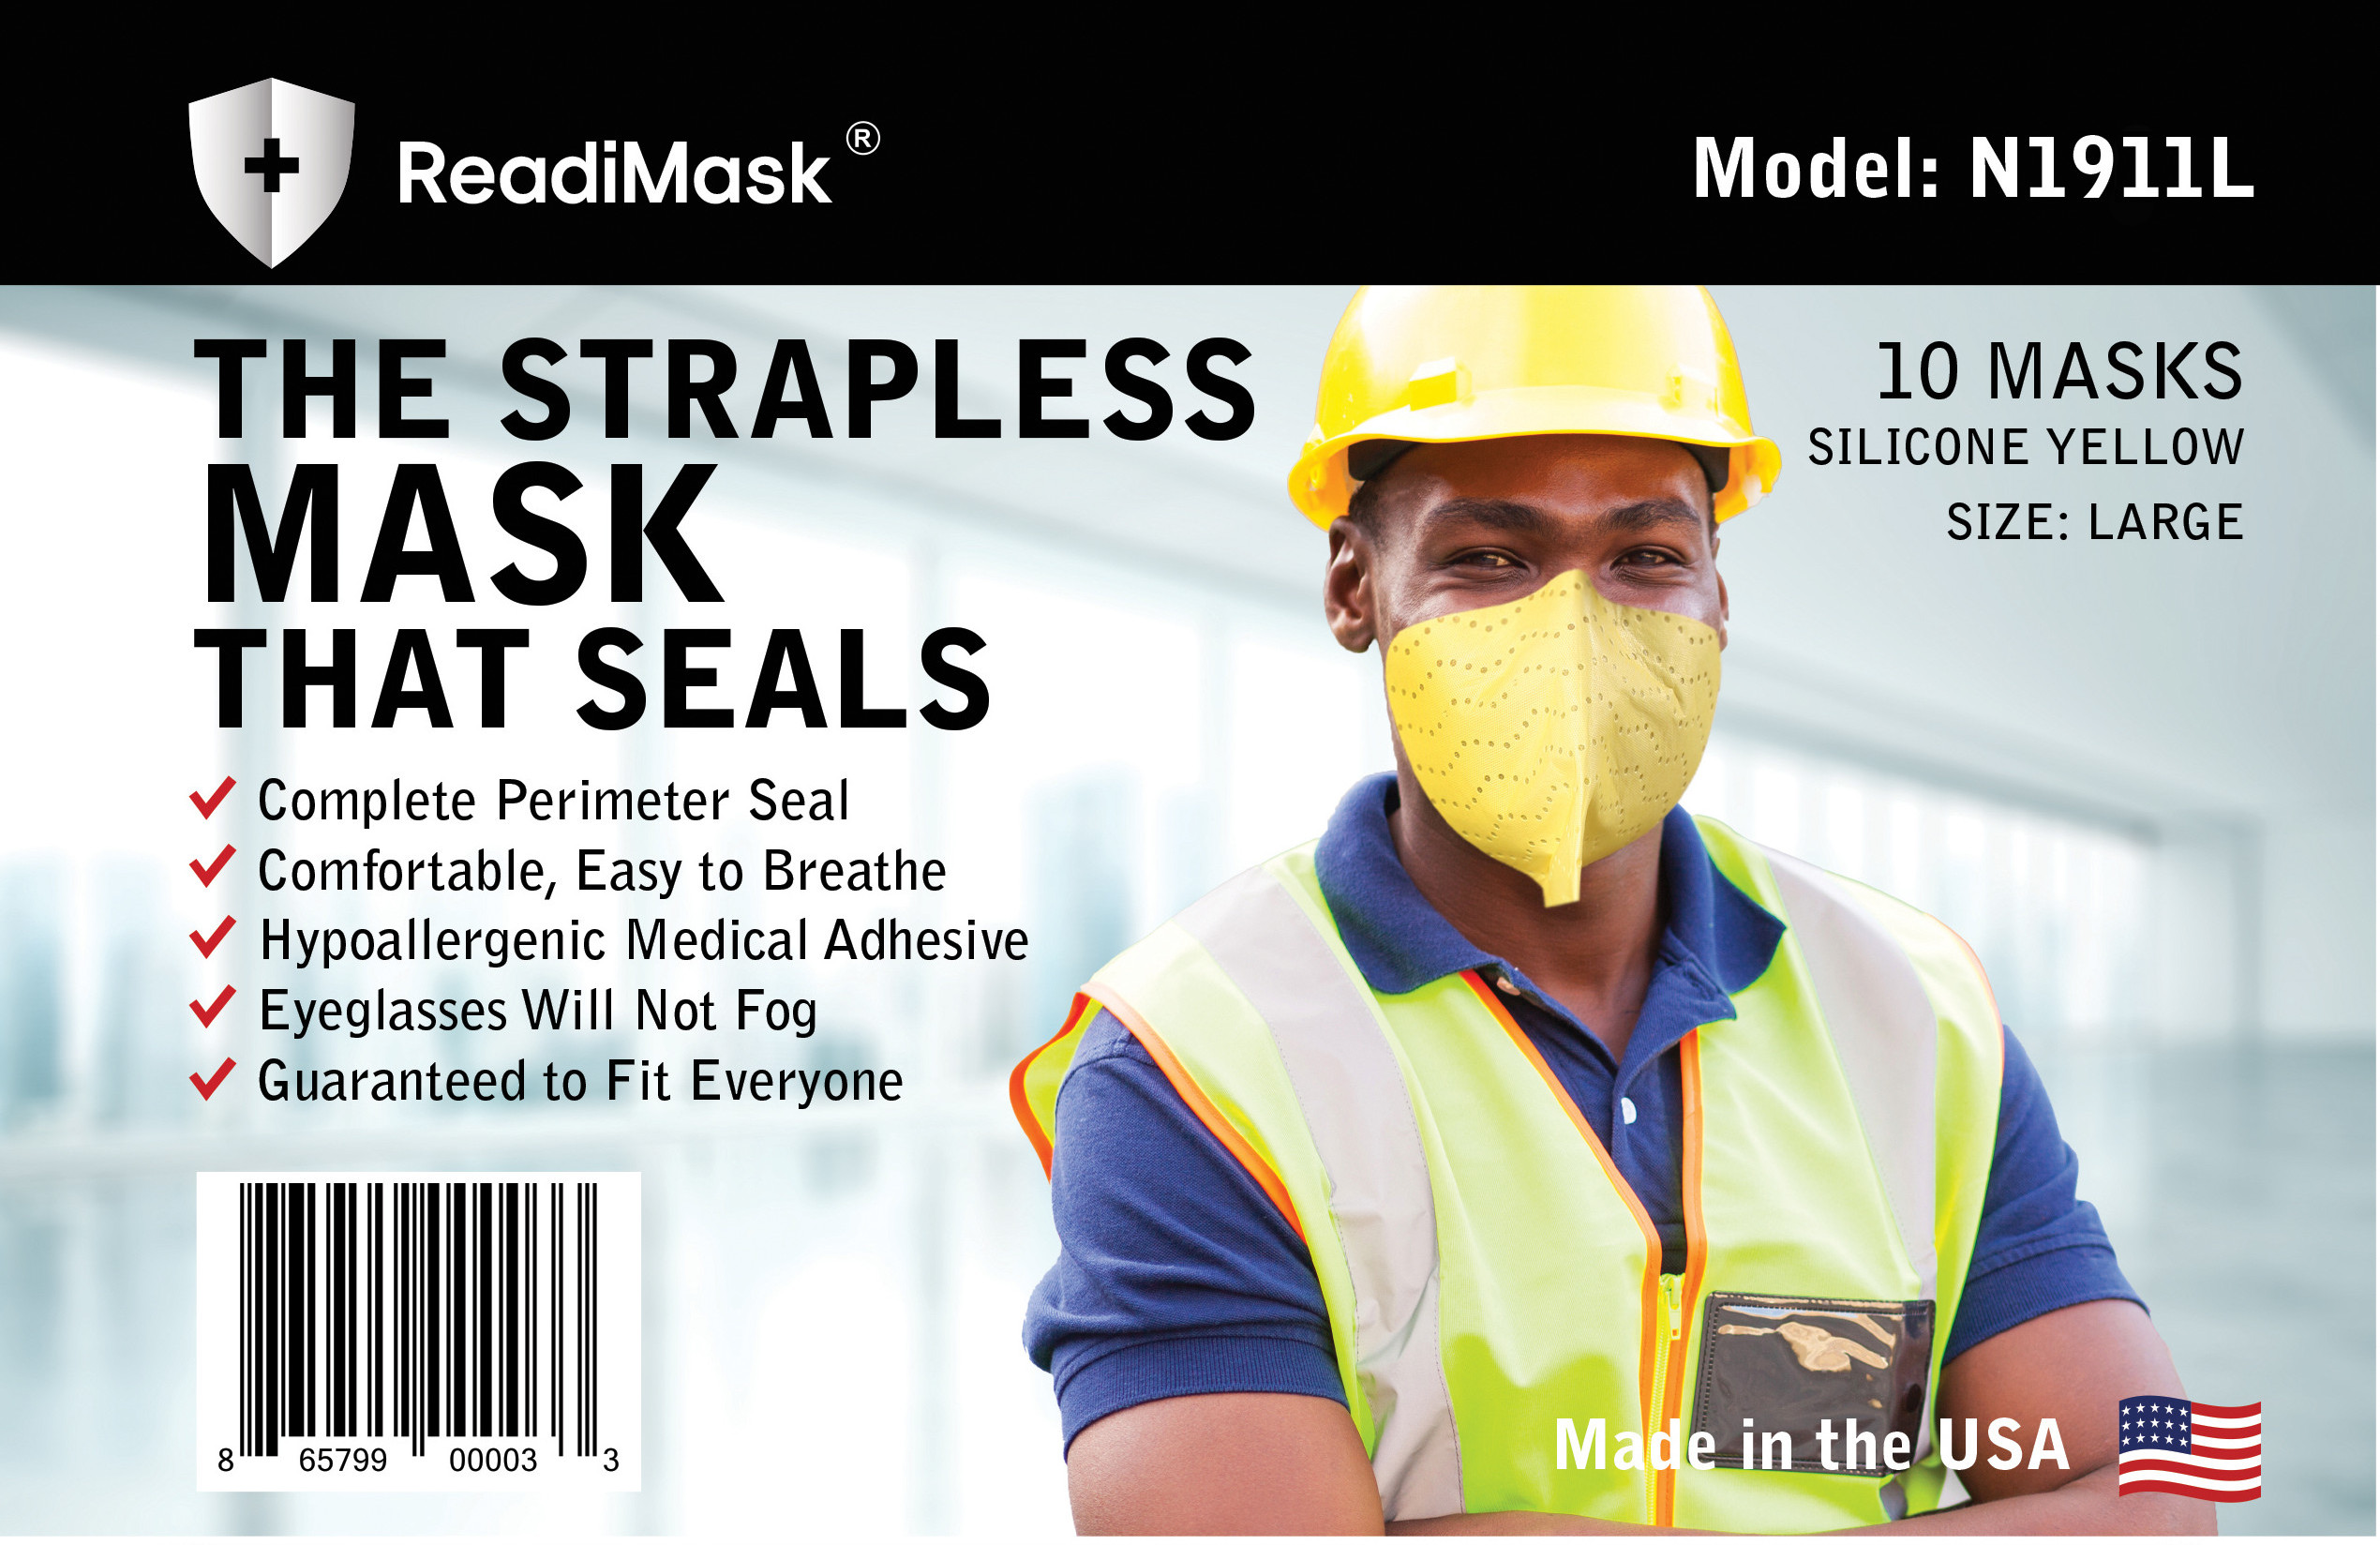 Large Yellow Adult - No Shield - 10 Pack Masks In a Resealable Plastic bag (NOT N95)